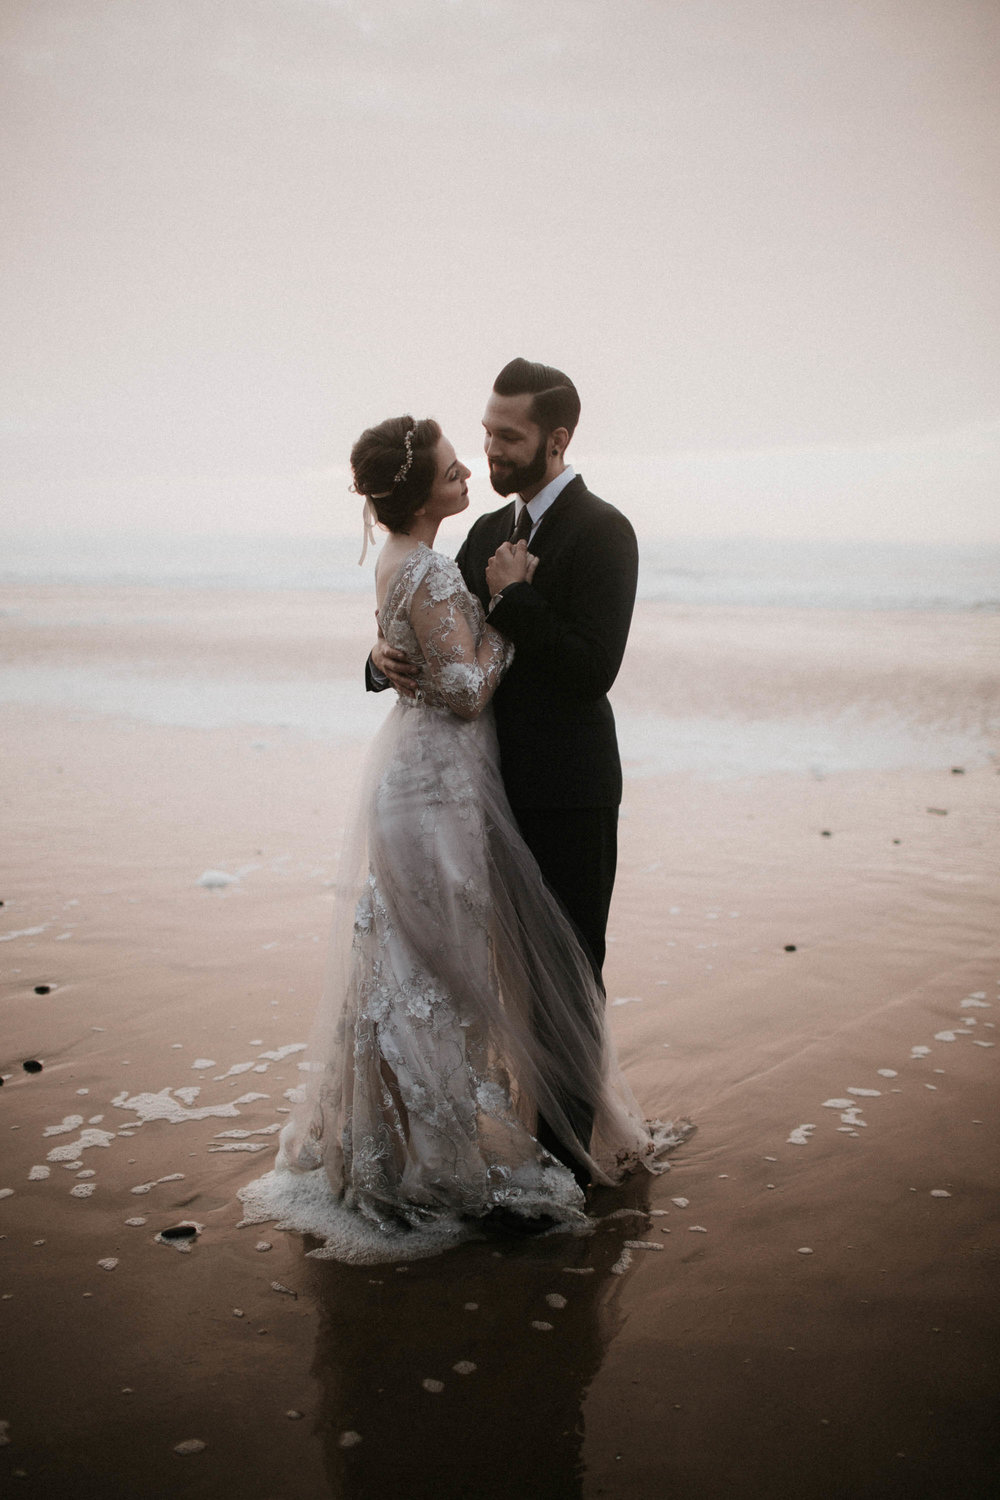 canonbeach_elopment_weddingphotographer-81.jpg